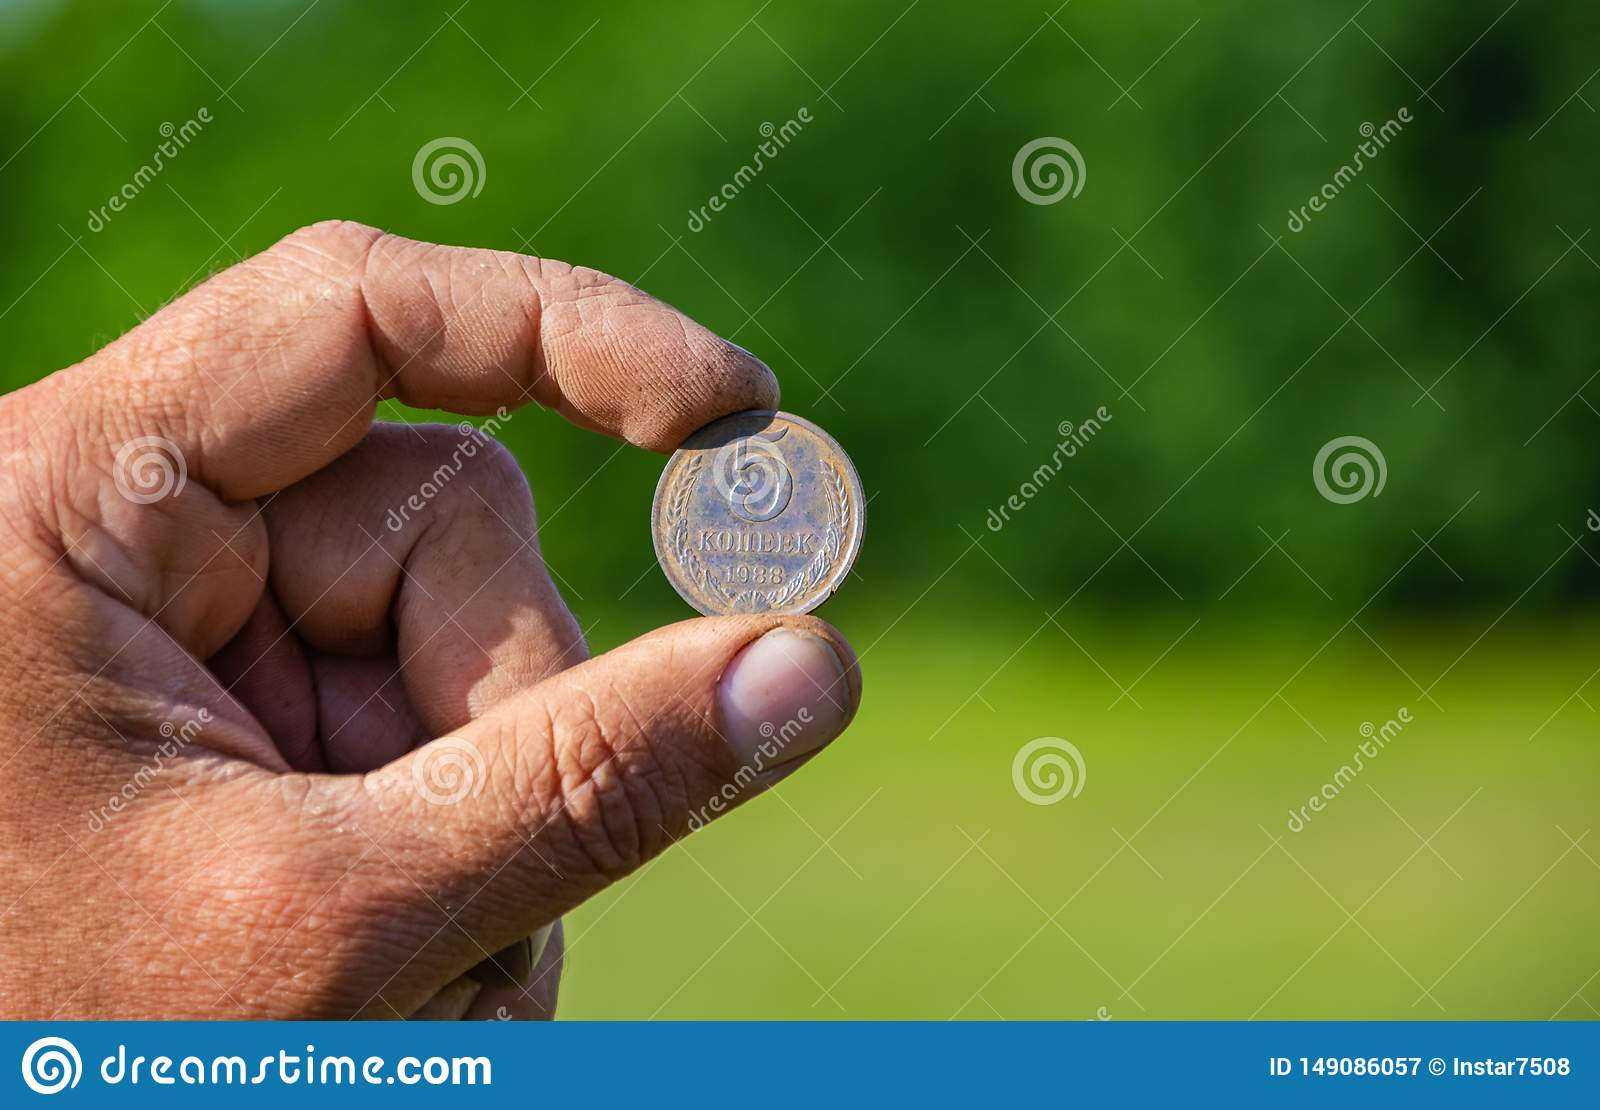 where to find old coins in the ground